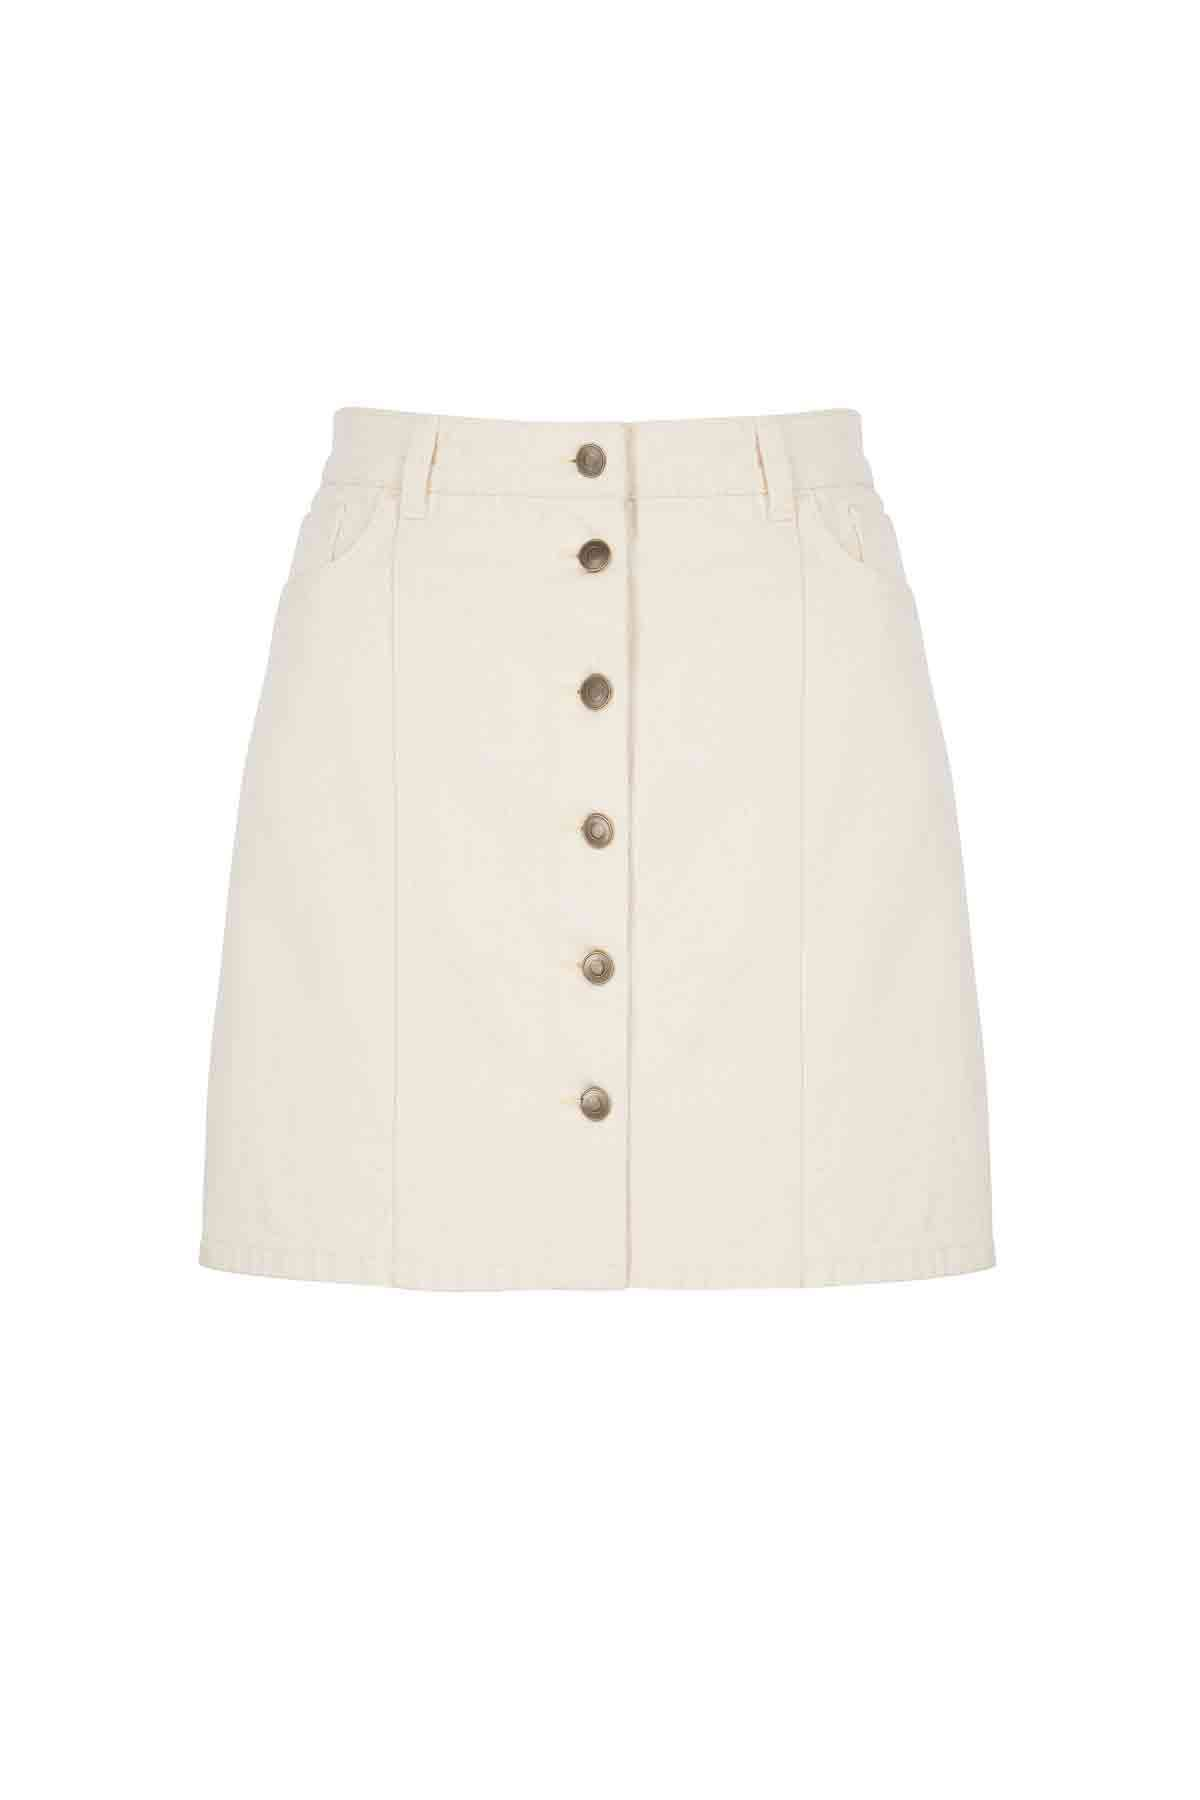 944e307512 Every piece in Holly Willoughby x Marks & Spencer collection